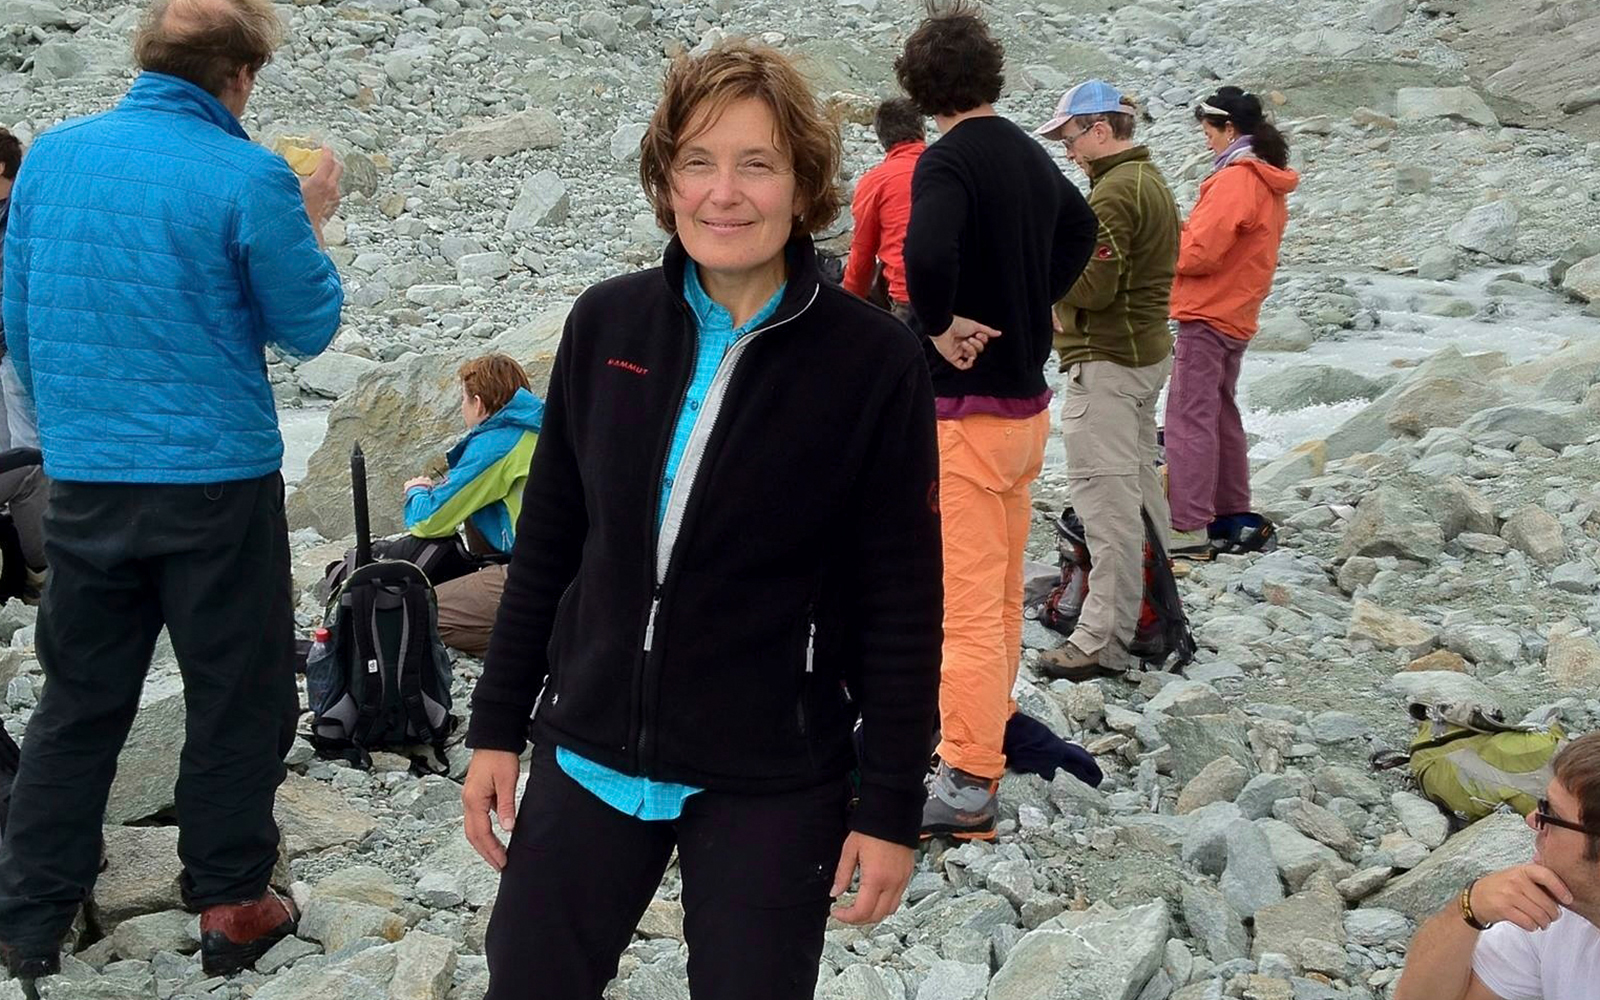 Suzanne Eaton murder: Man arrested for murder of U.S. scientist